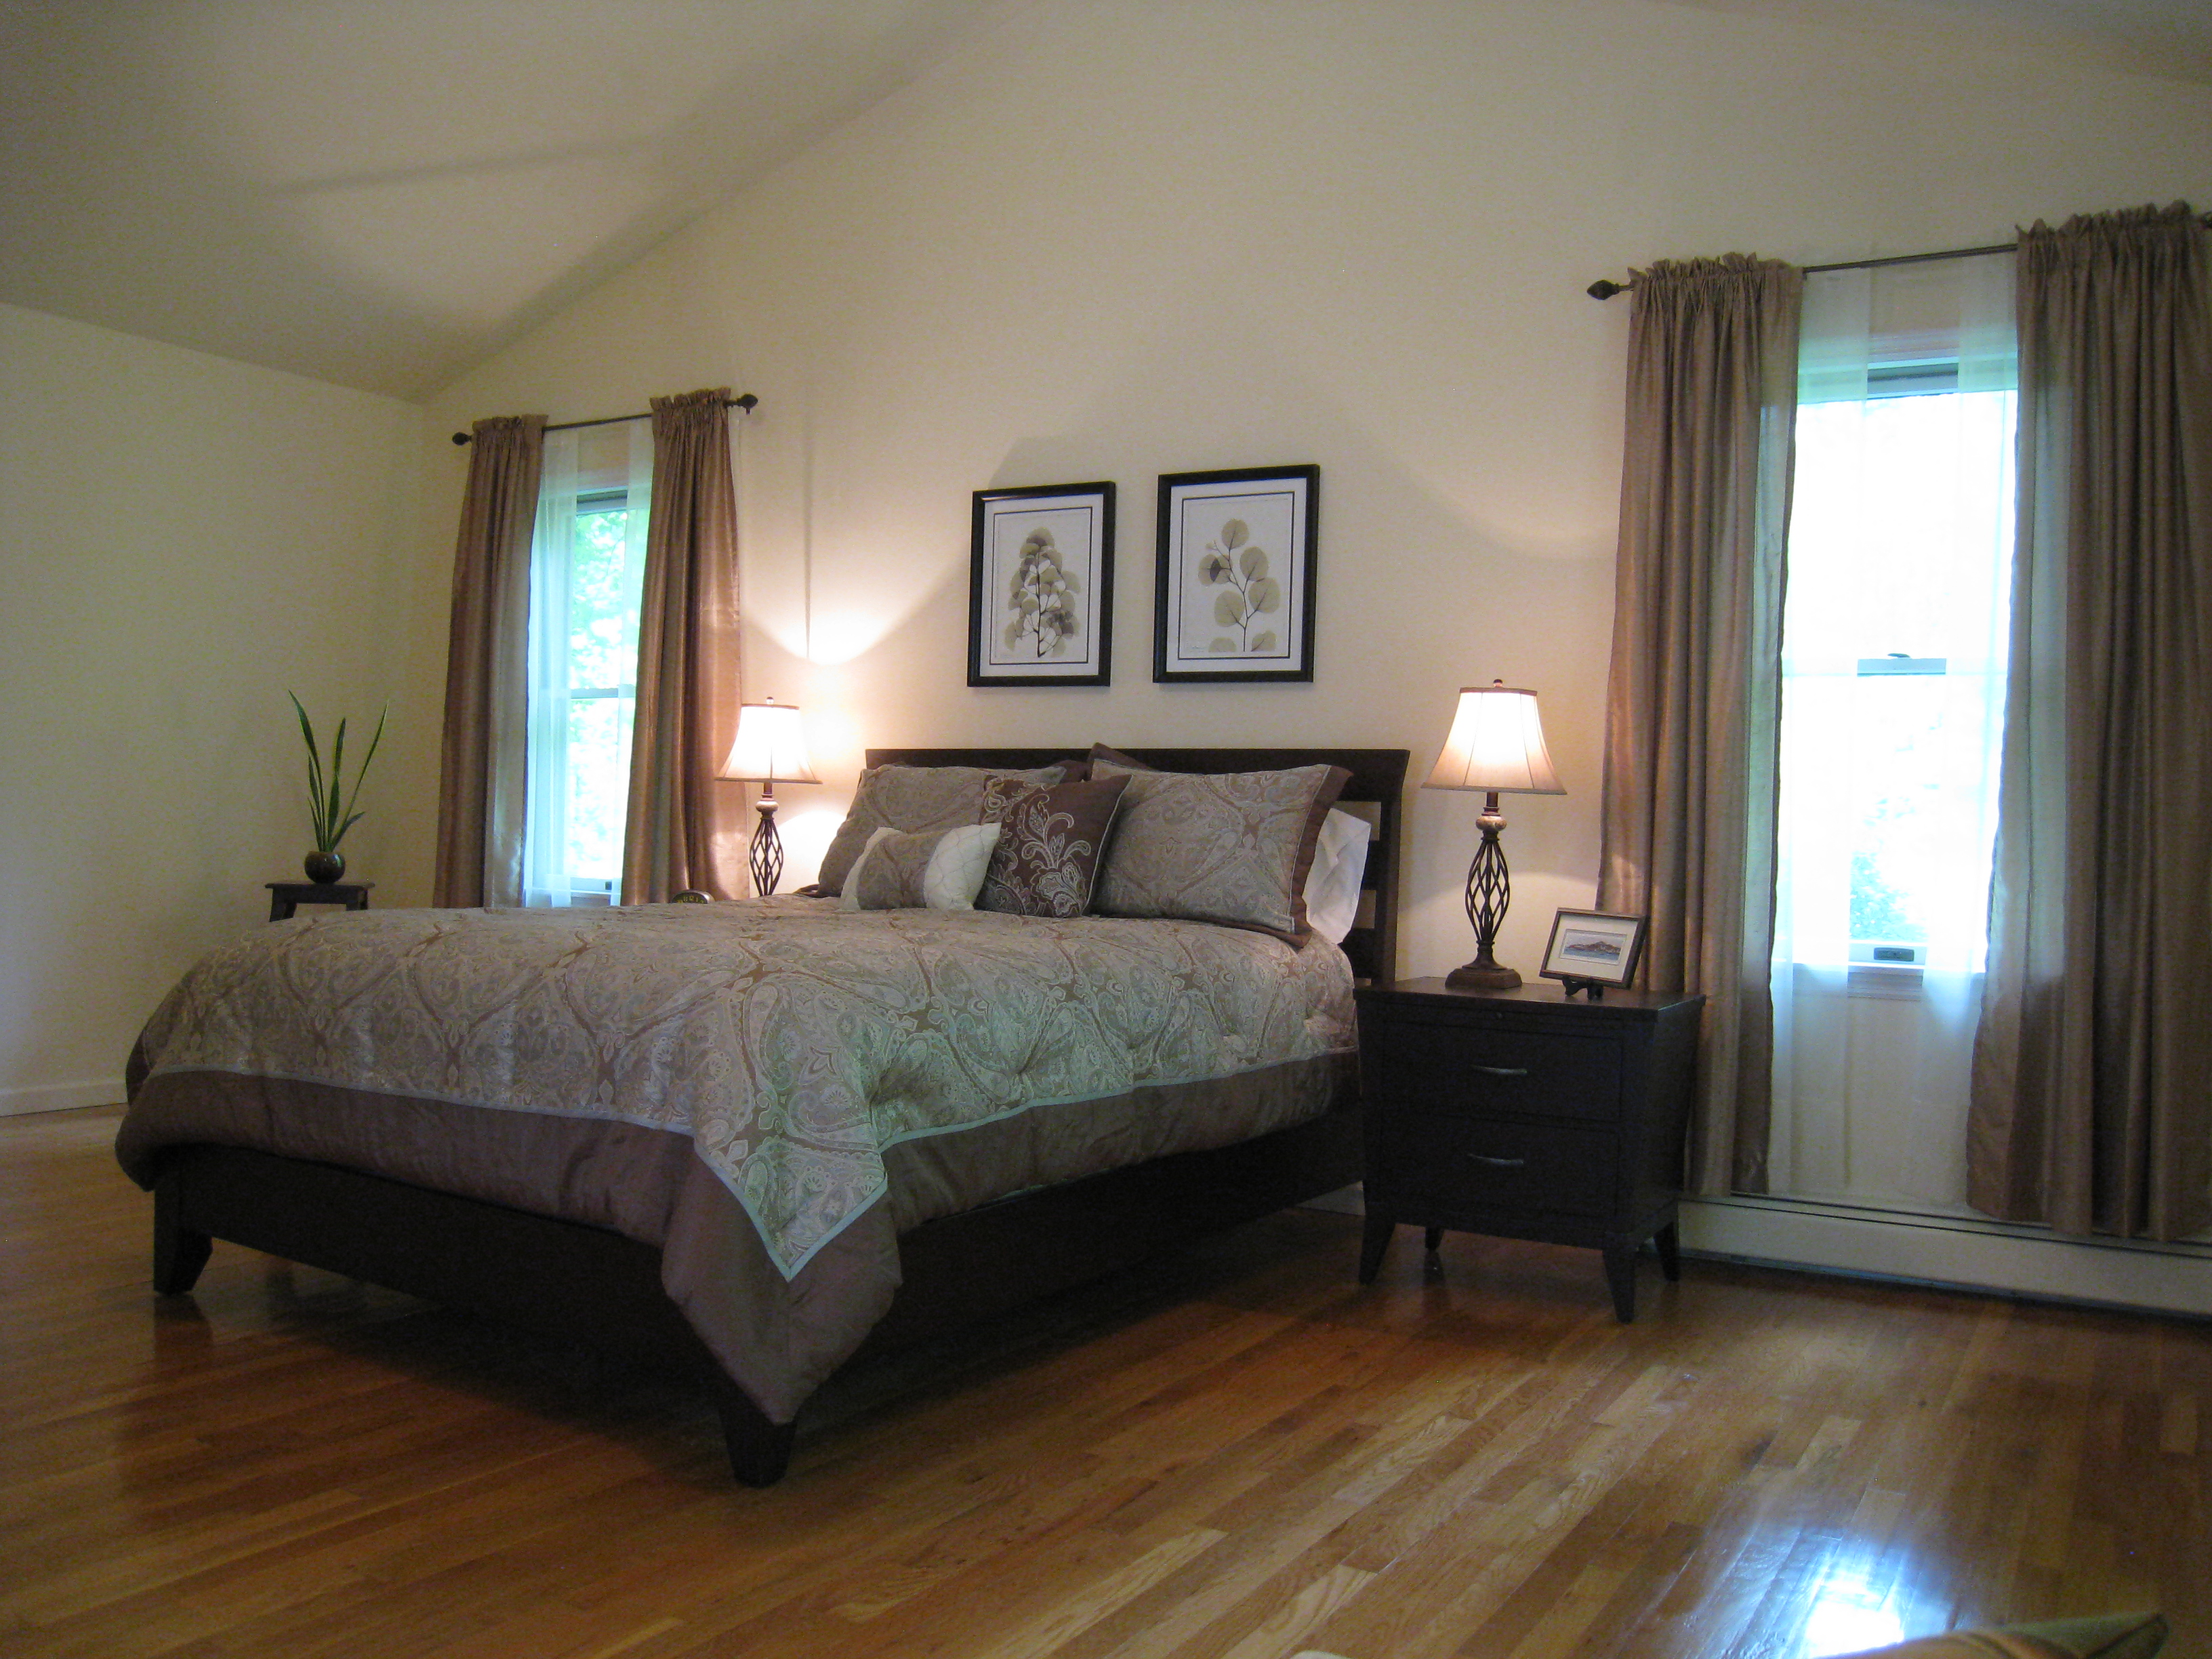 Home Staging Katonah: Sold in a Day